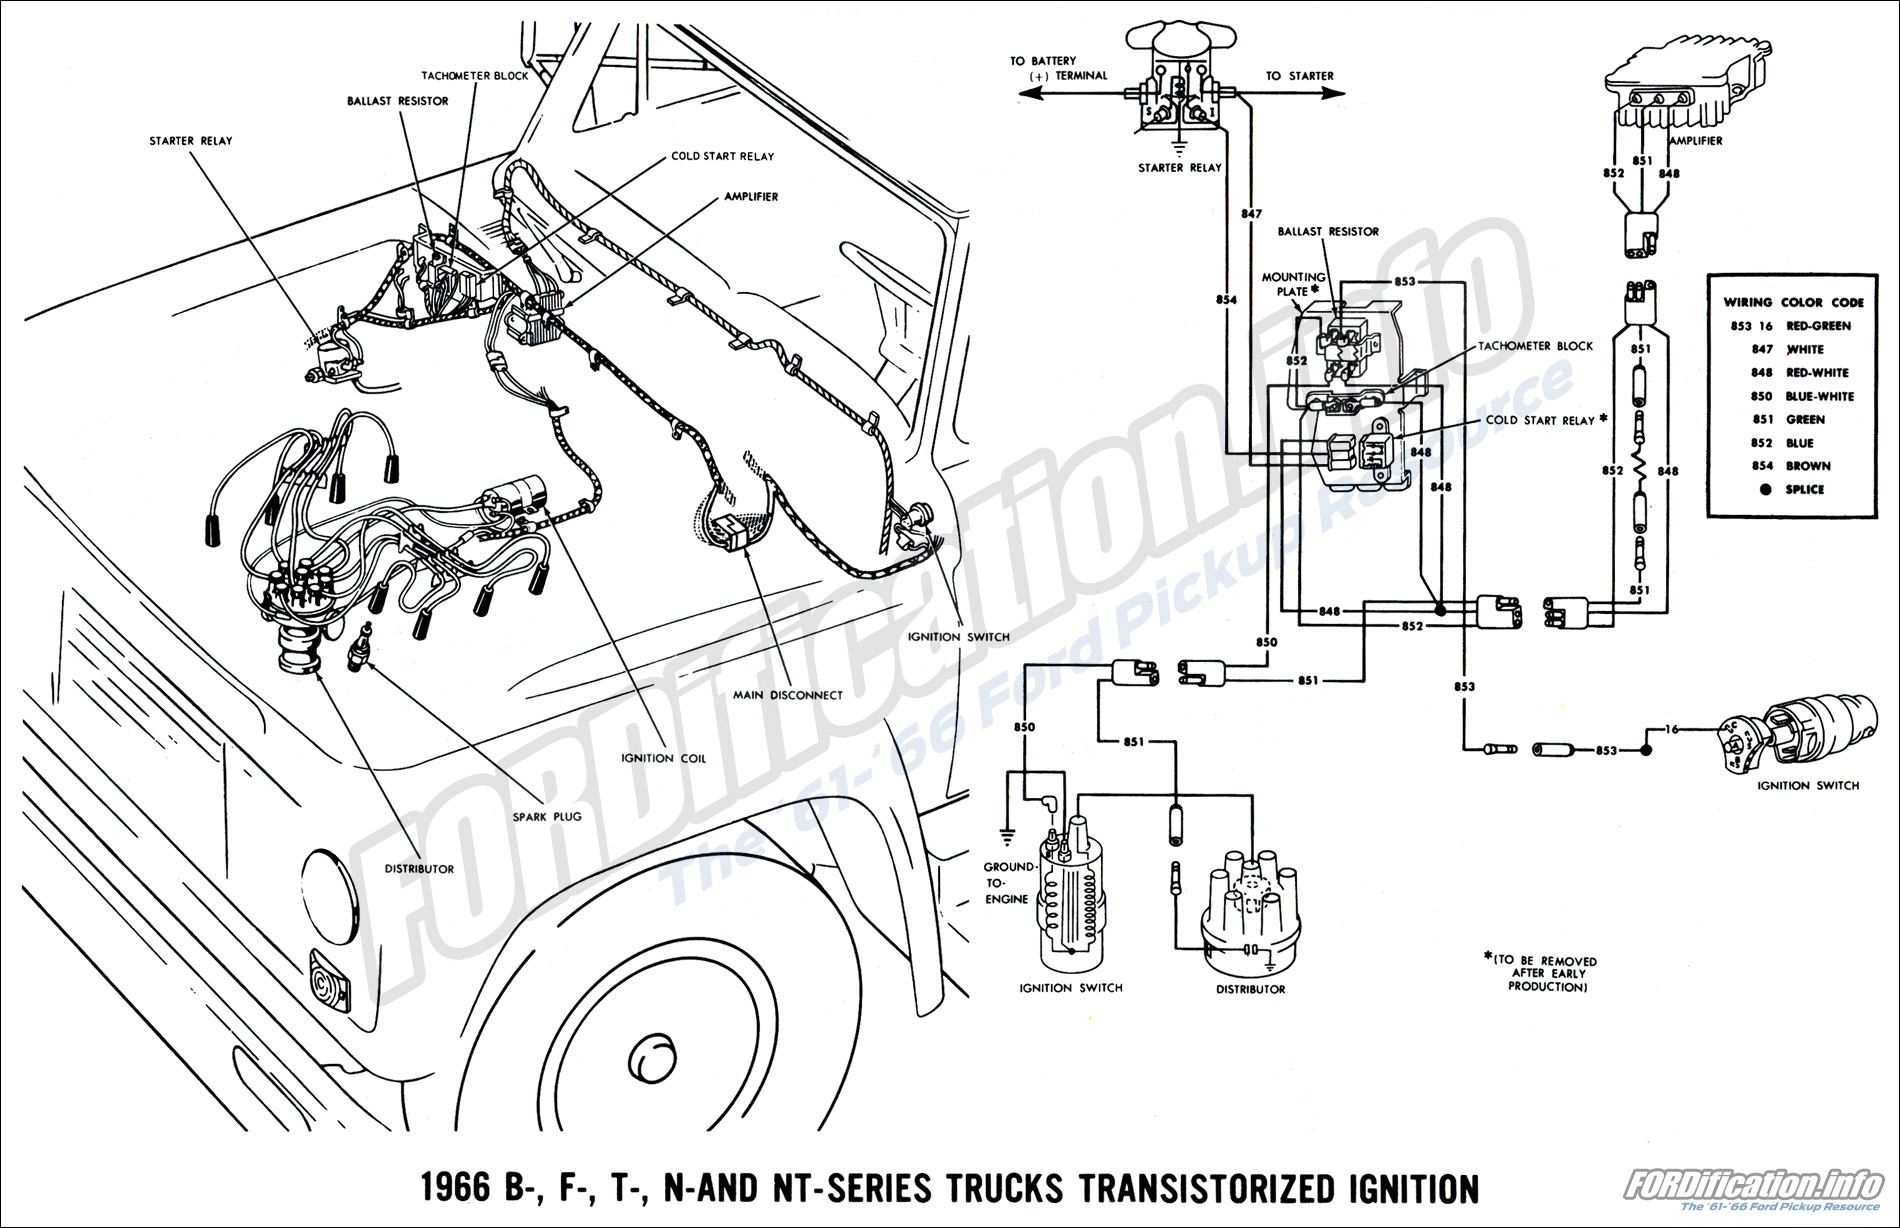 1963 ford truck f 100 wiring diagrams online wiring diagram1961 1963 ford f 250 wiring diagram wiring diagram1966 ford f 250 wiring diagram schematic diagram1966